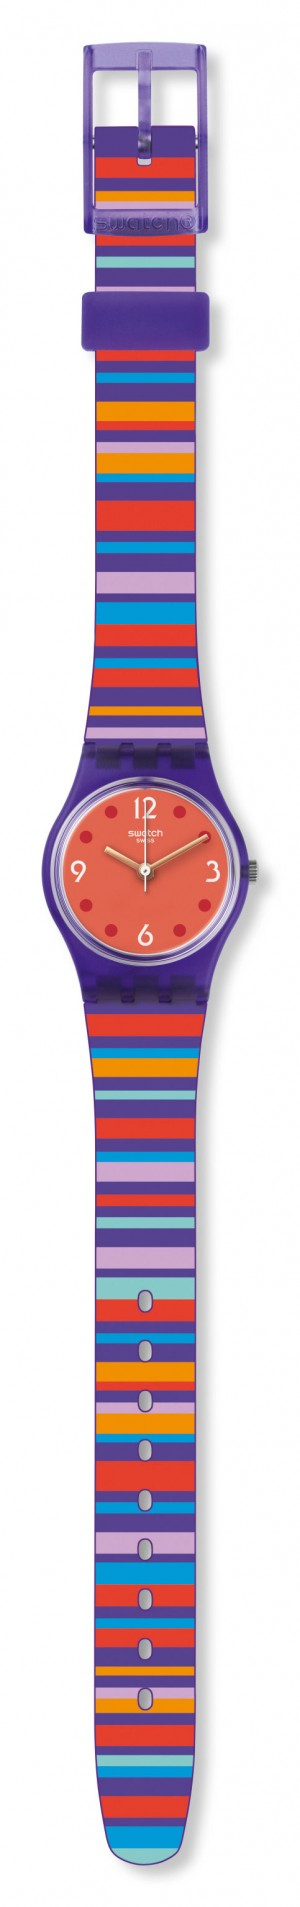 Swatch Multi-Codes